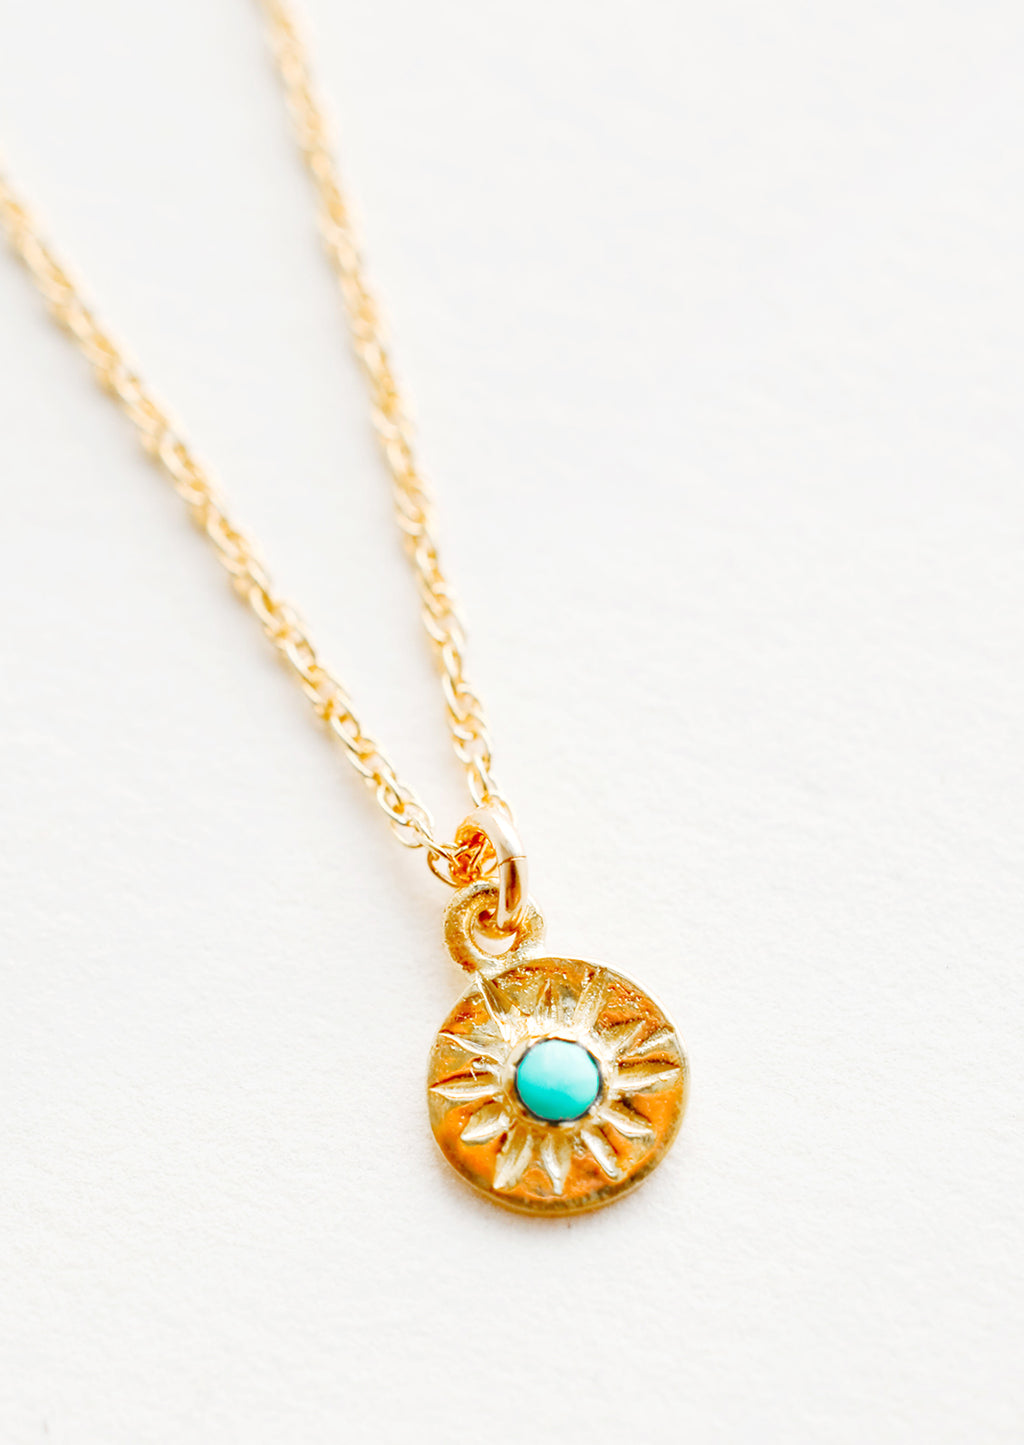 Turquoise: Detail of necklace with thin gold chain and small golden pendant with turquoise stone at center.